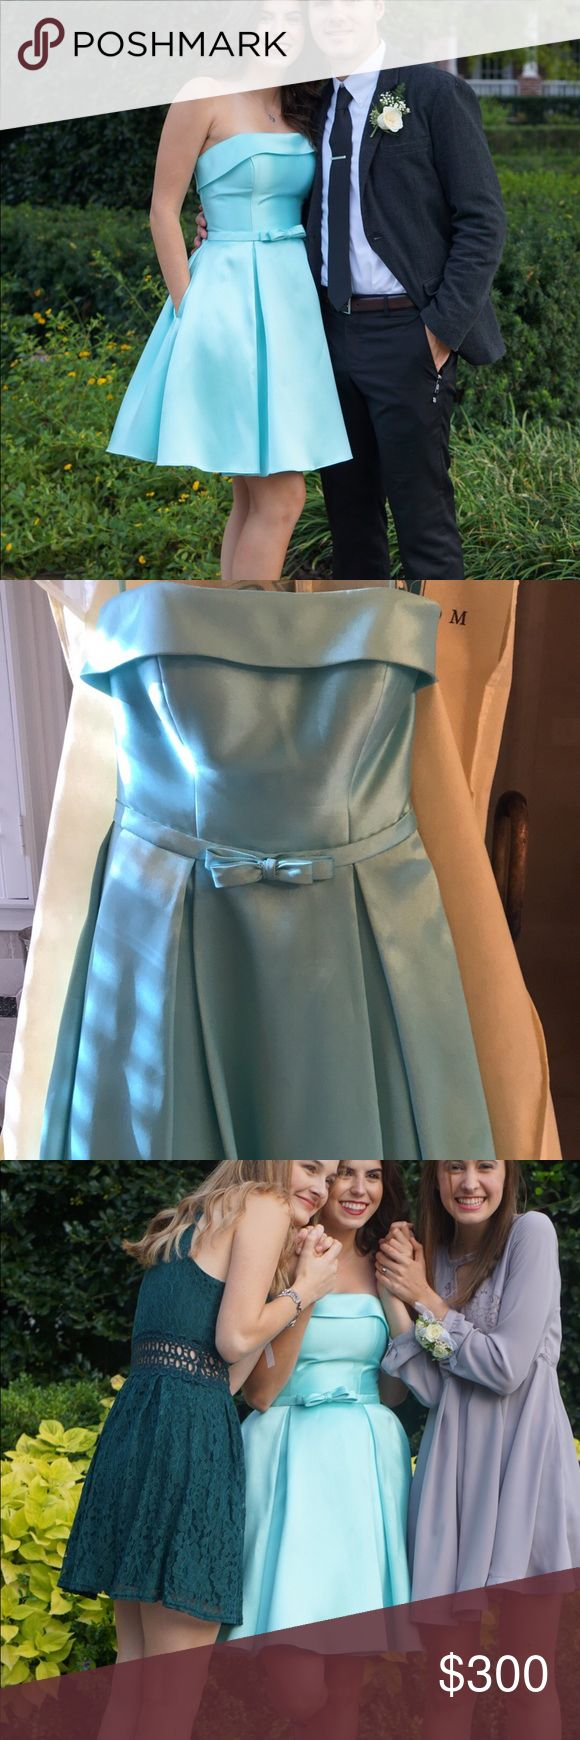 Sherri Hill dress Size 4 perfect condition Sherri Hill Dresses Strapless